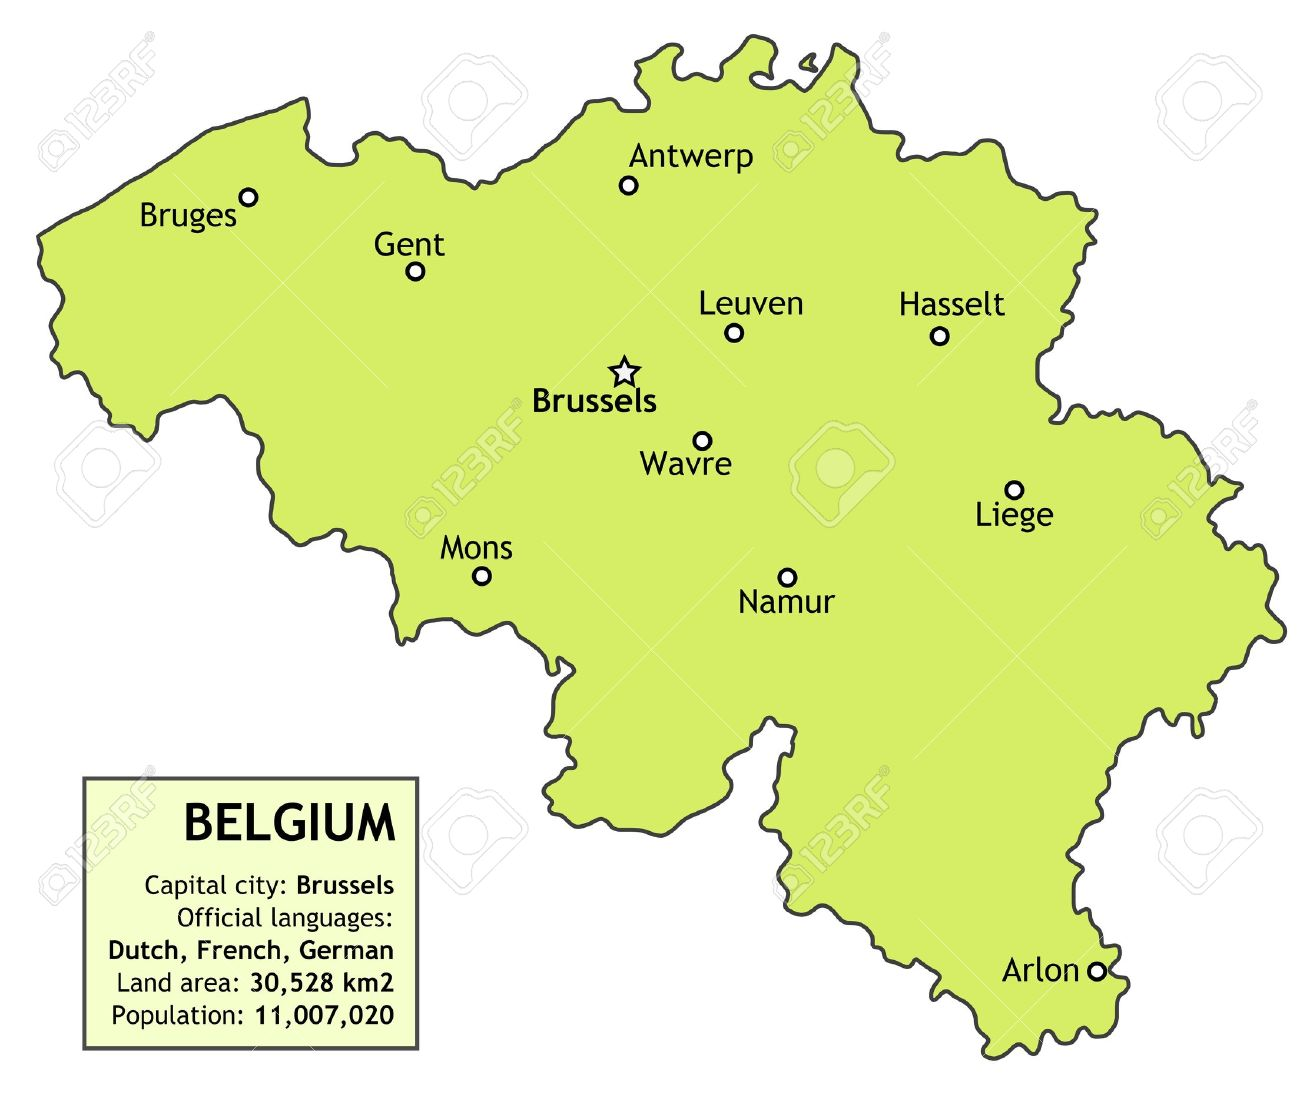 Belgium Map With Major Cities Brussels Antwerp Namur Liege